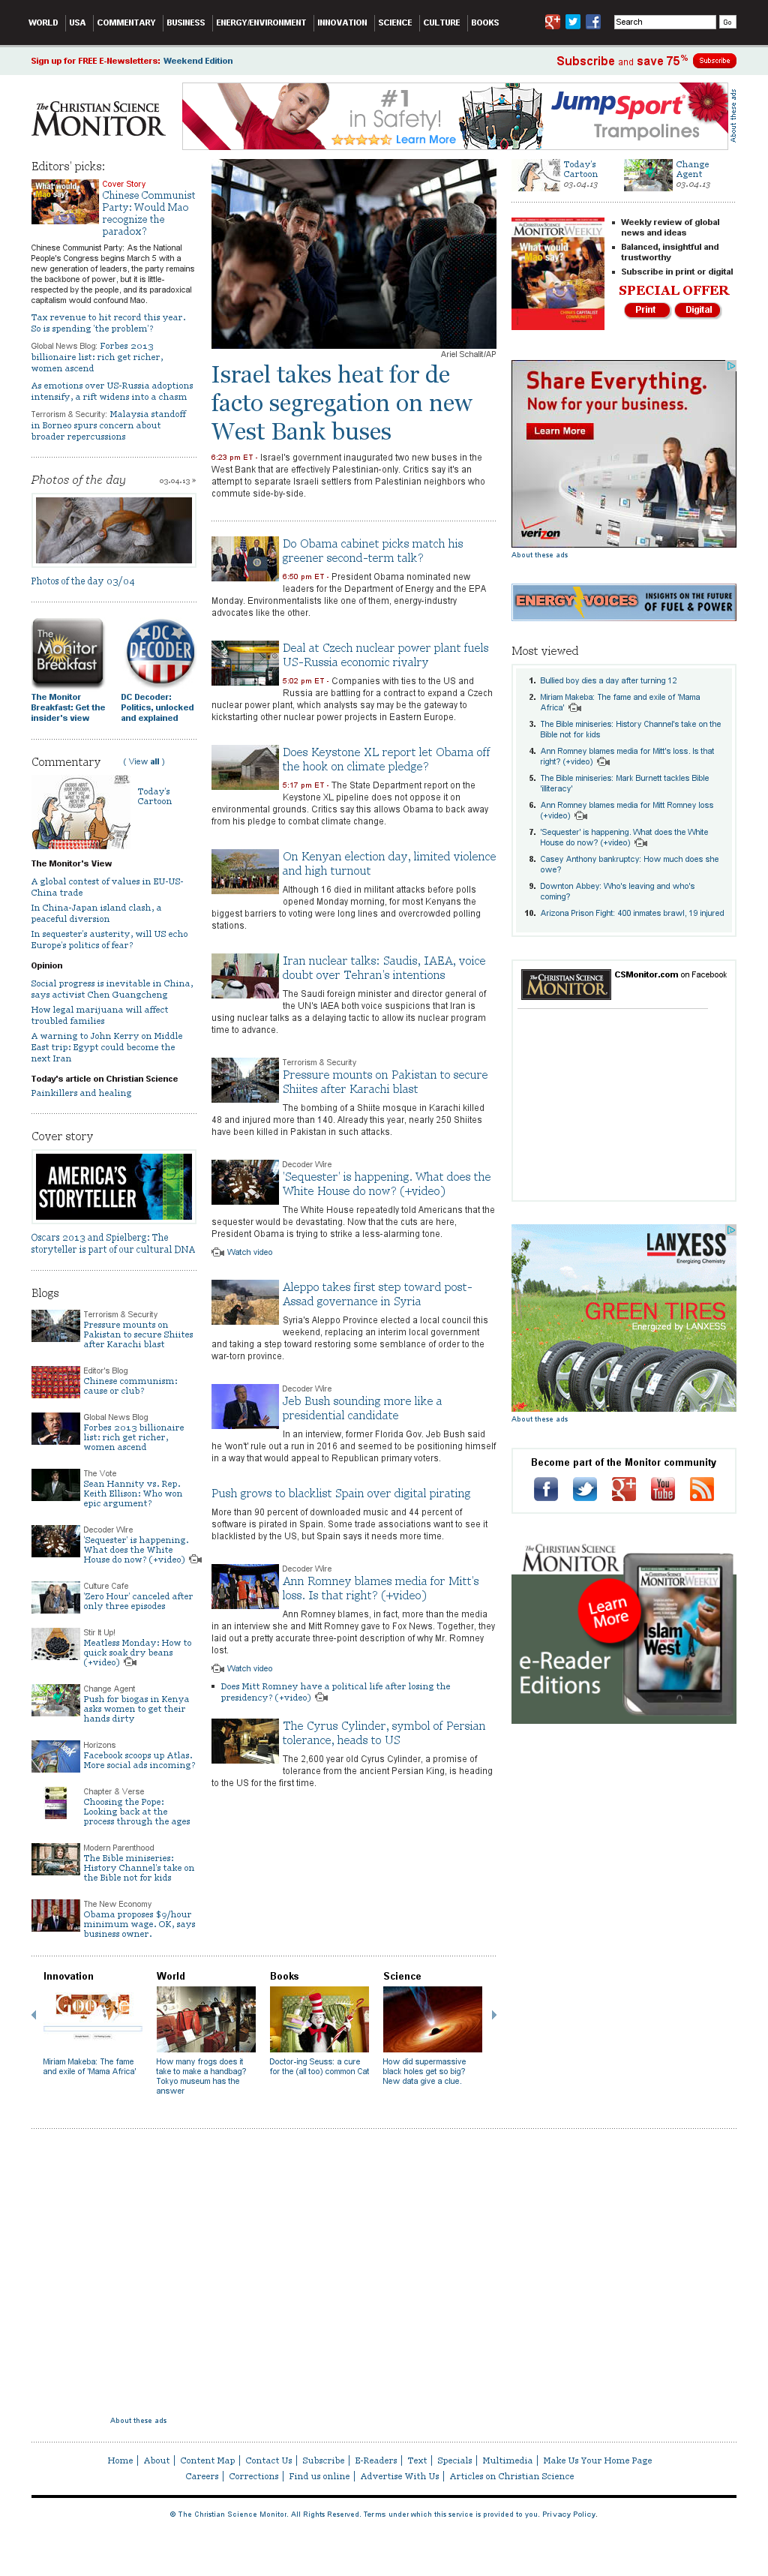 The Christian Science Monitor at Tuesday March 5, 2013, 12:04 a.m. UTC